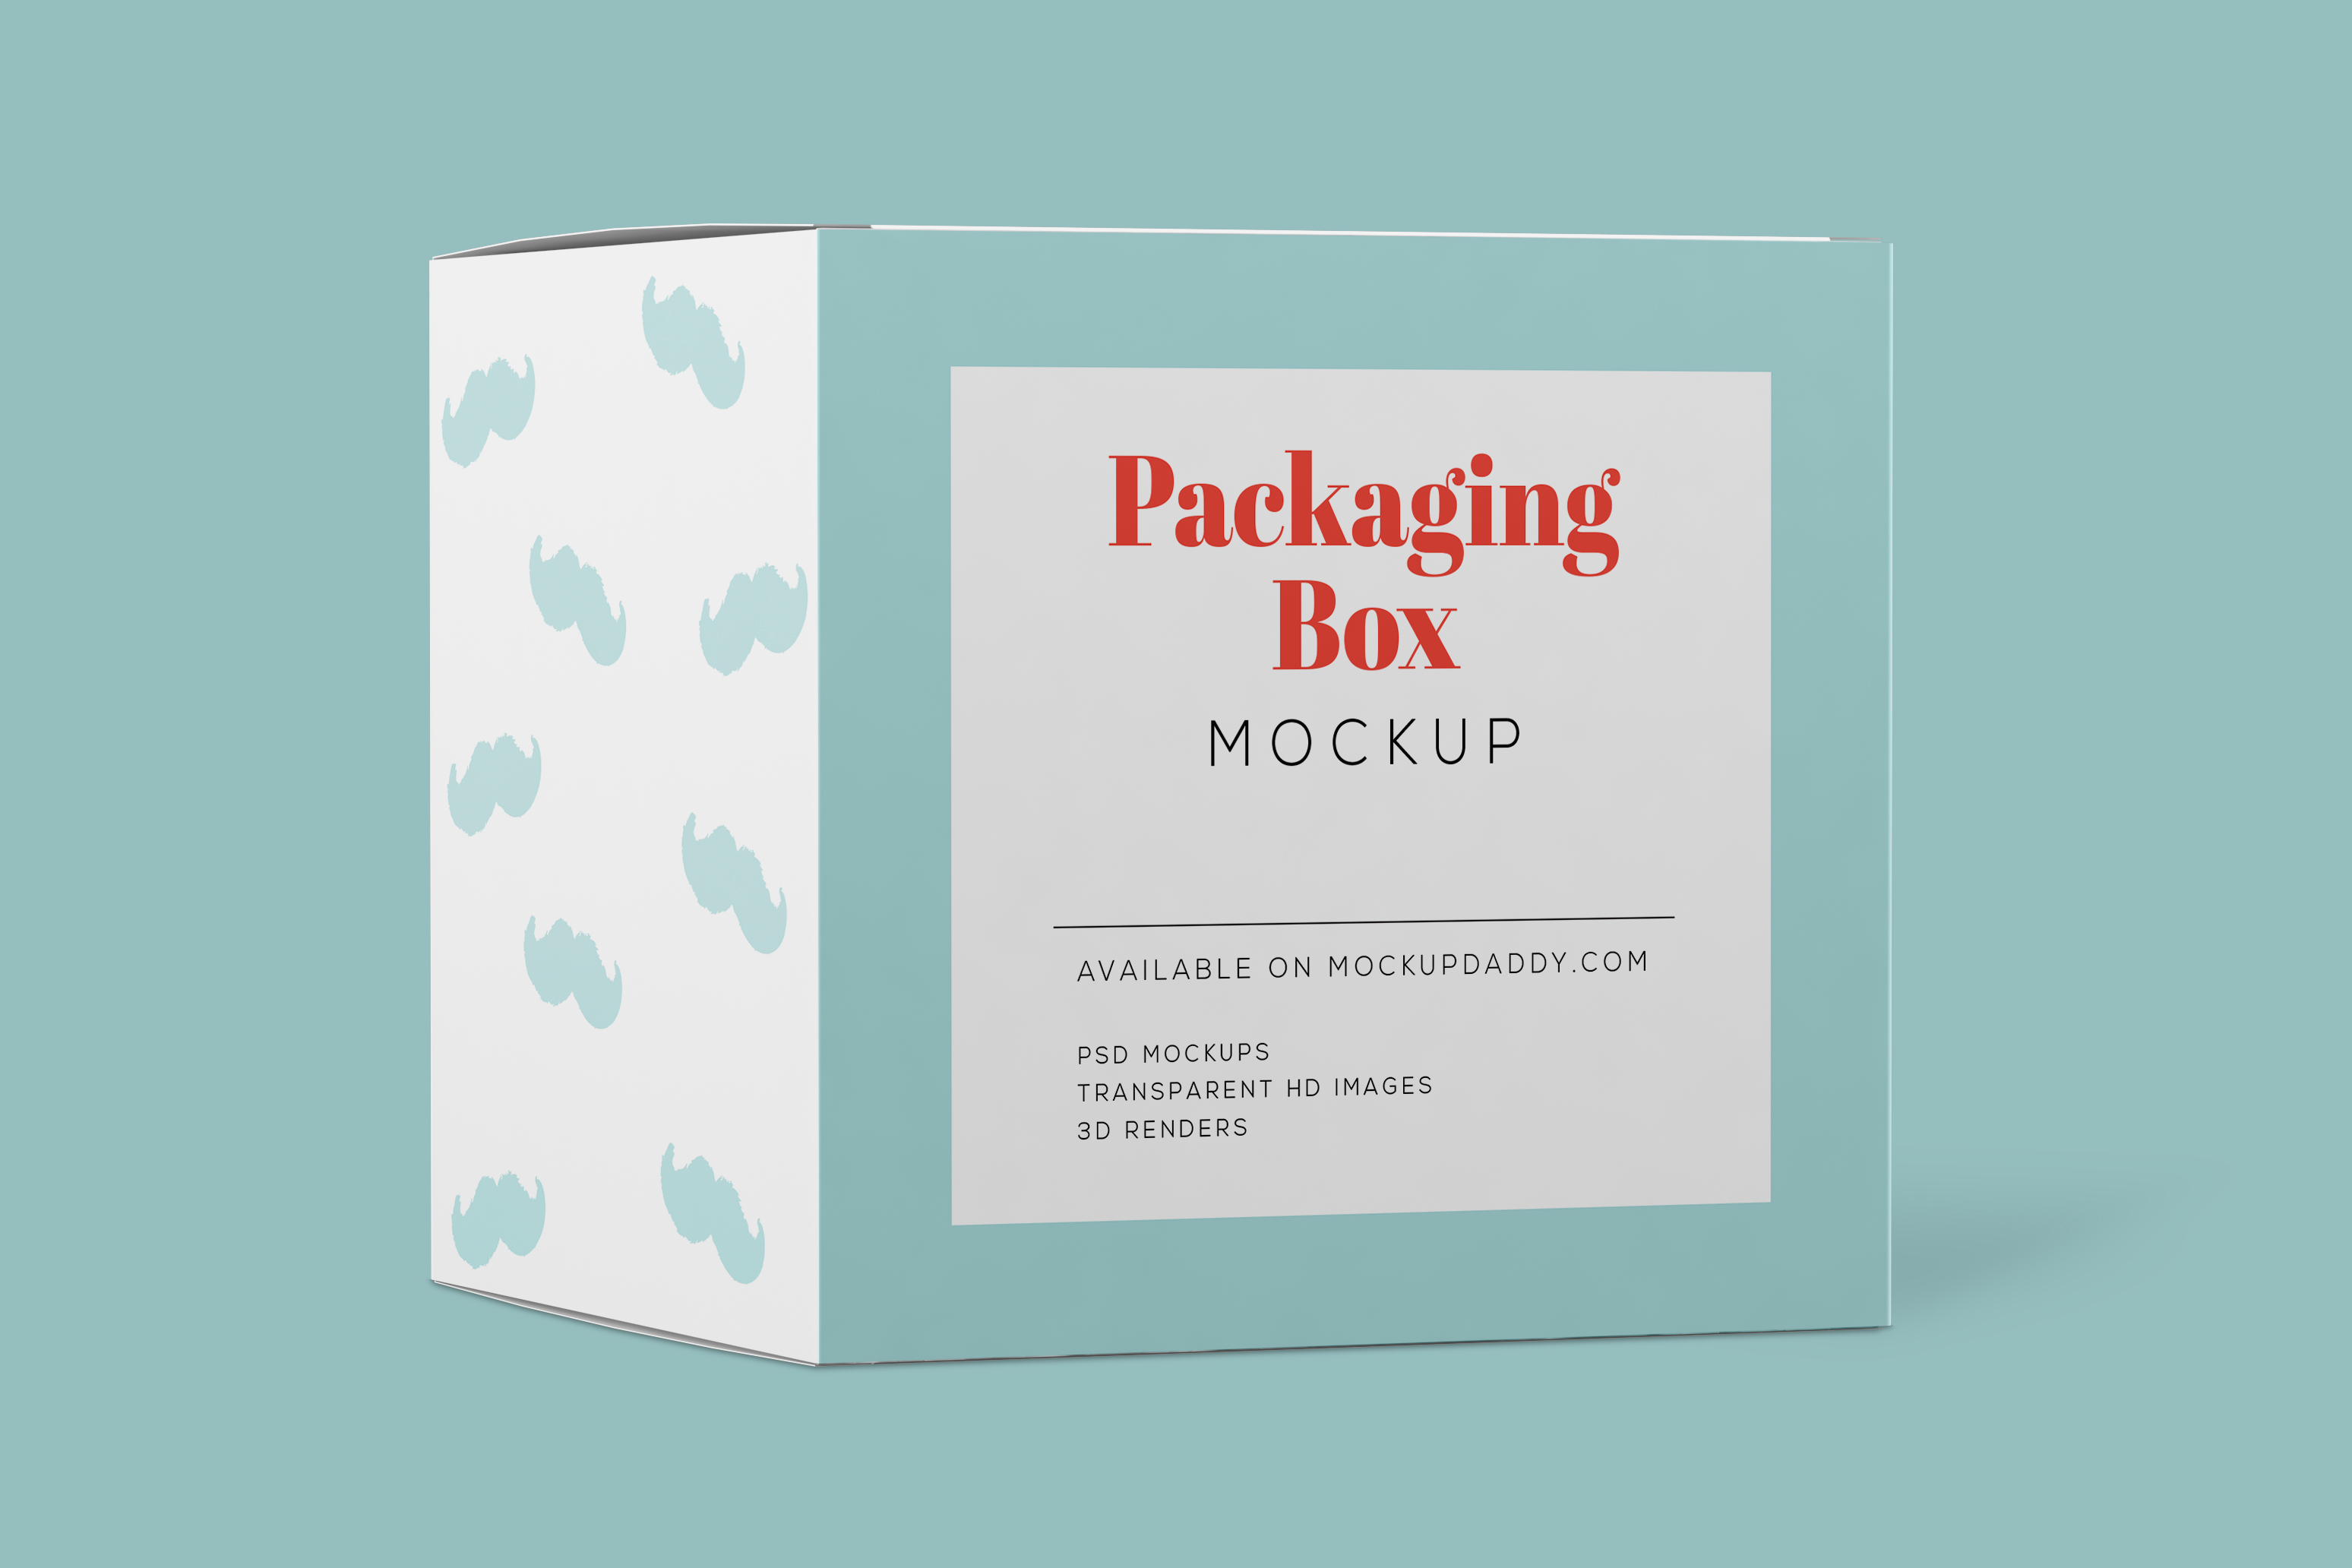 Square Box Mockup Free Psd Download Mockup Daddy